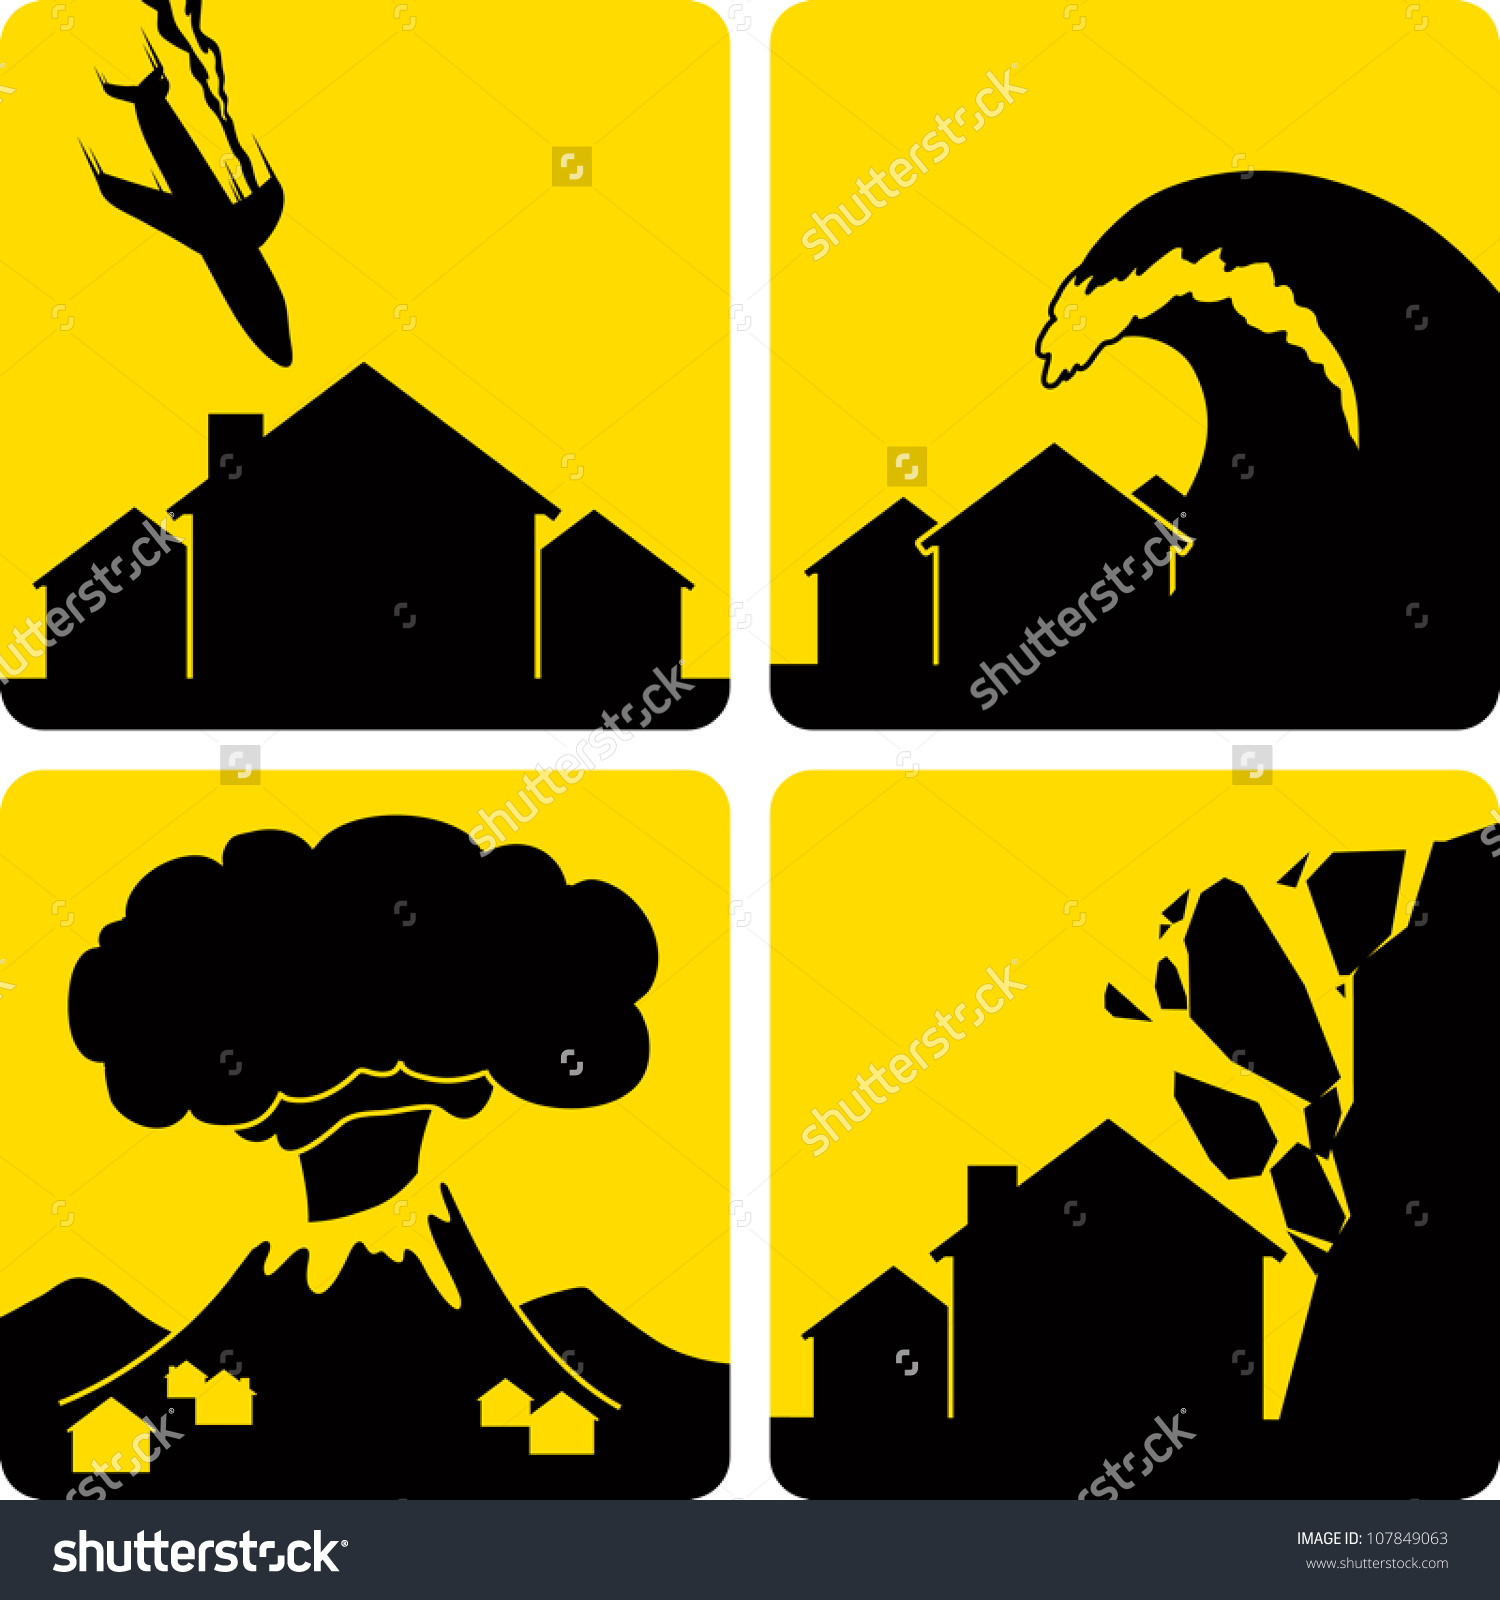 Disaster clipart all natural 20clipart #126 20clipart 88 Earthquake